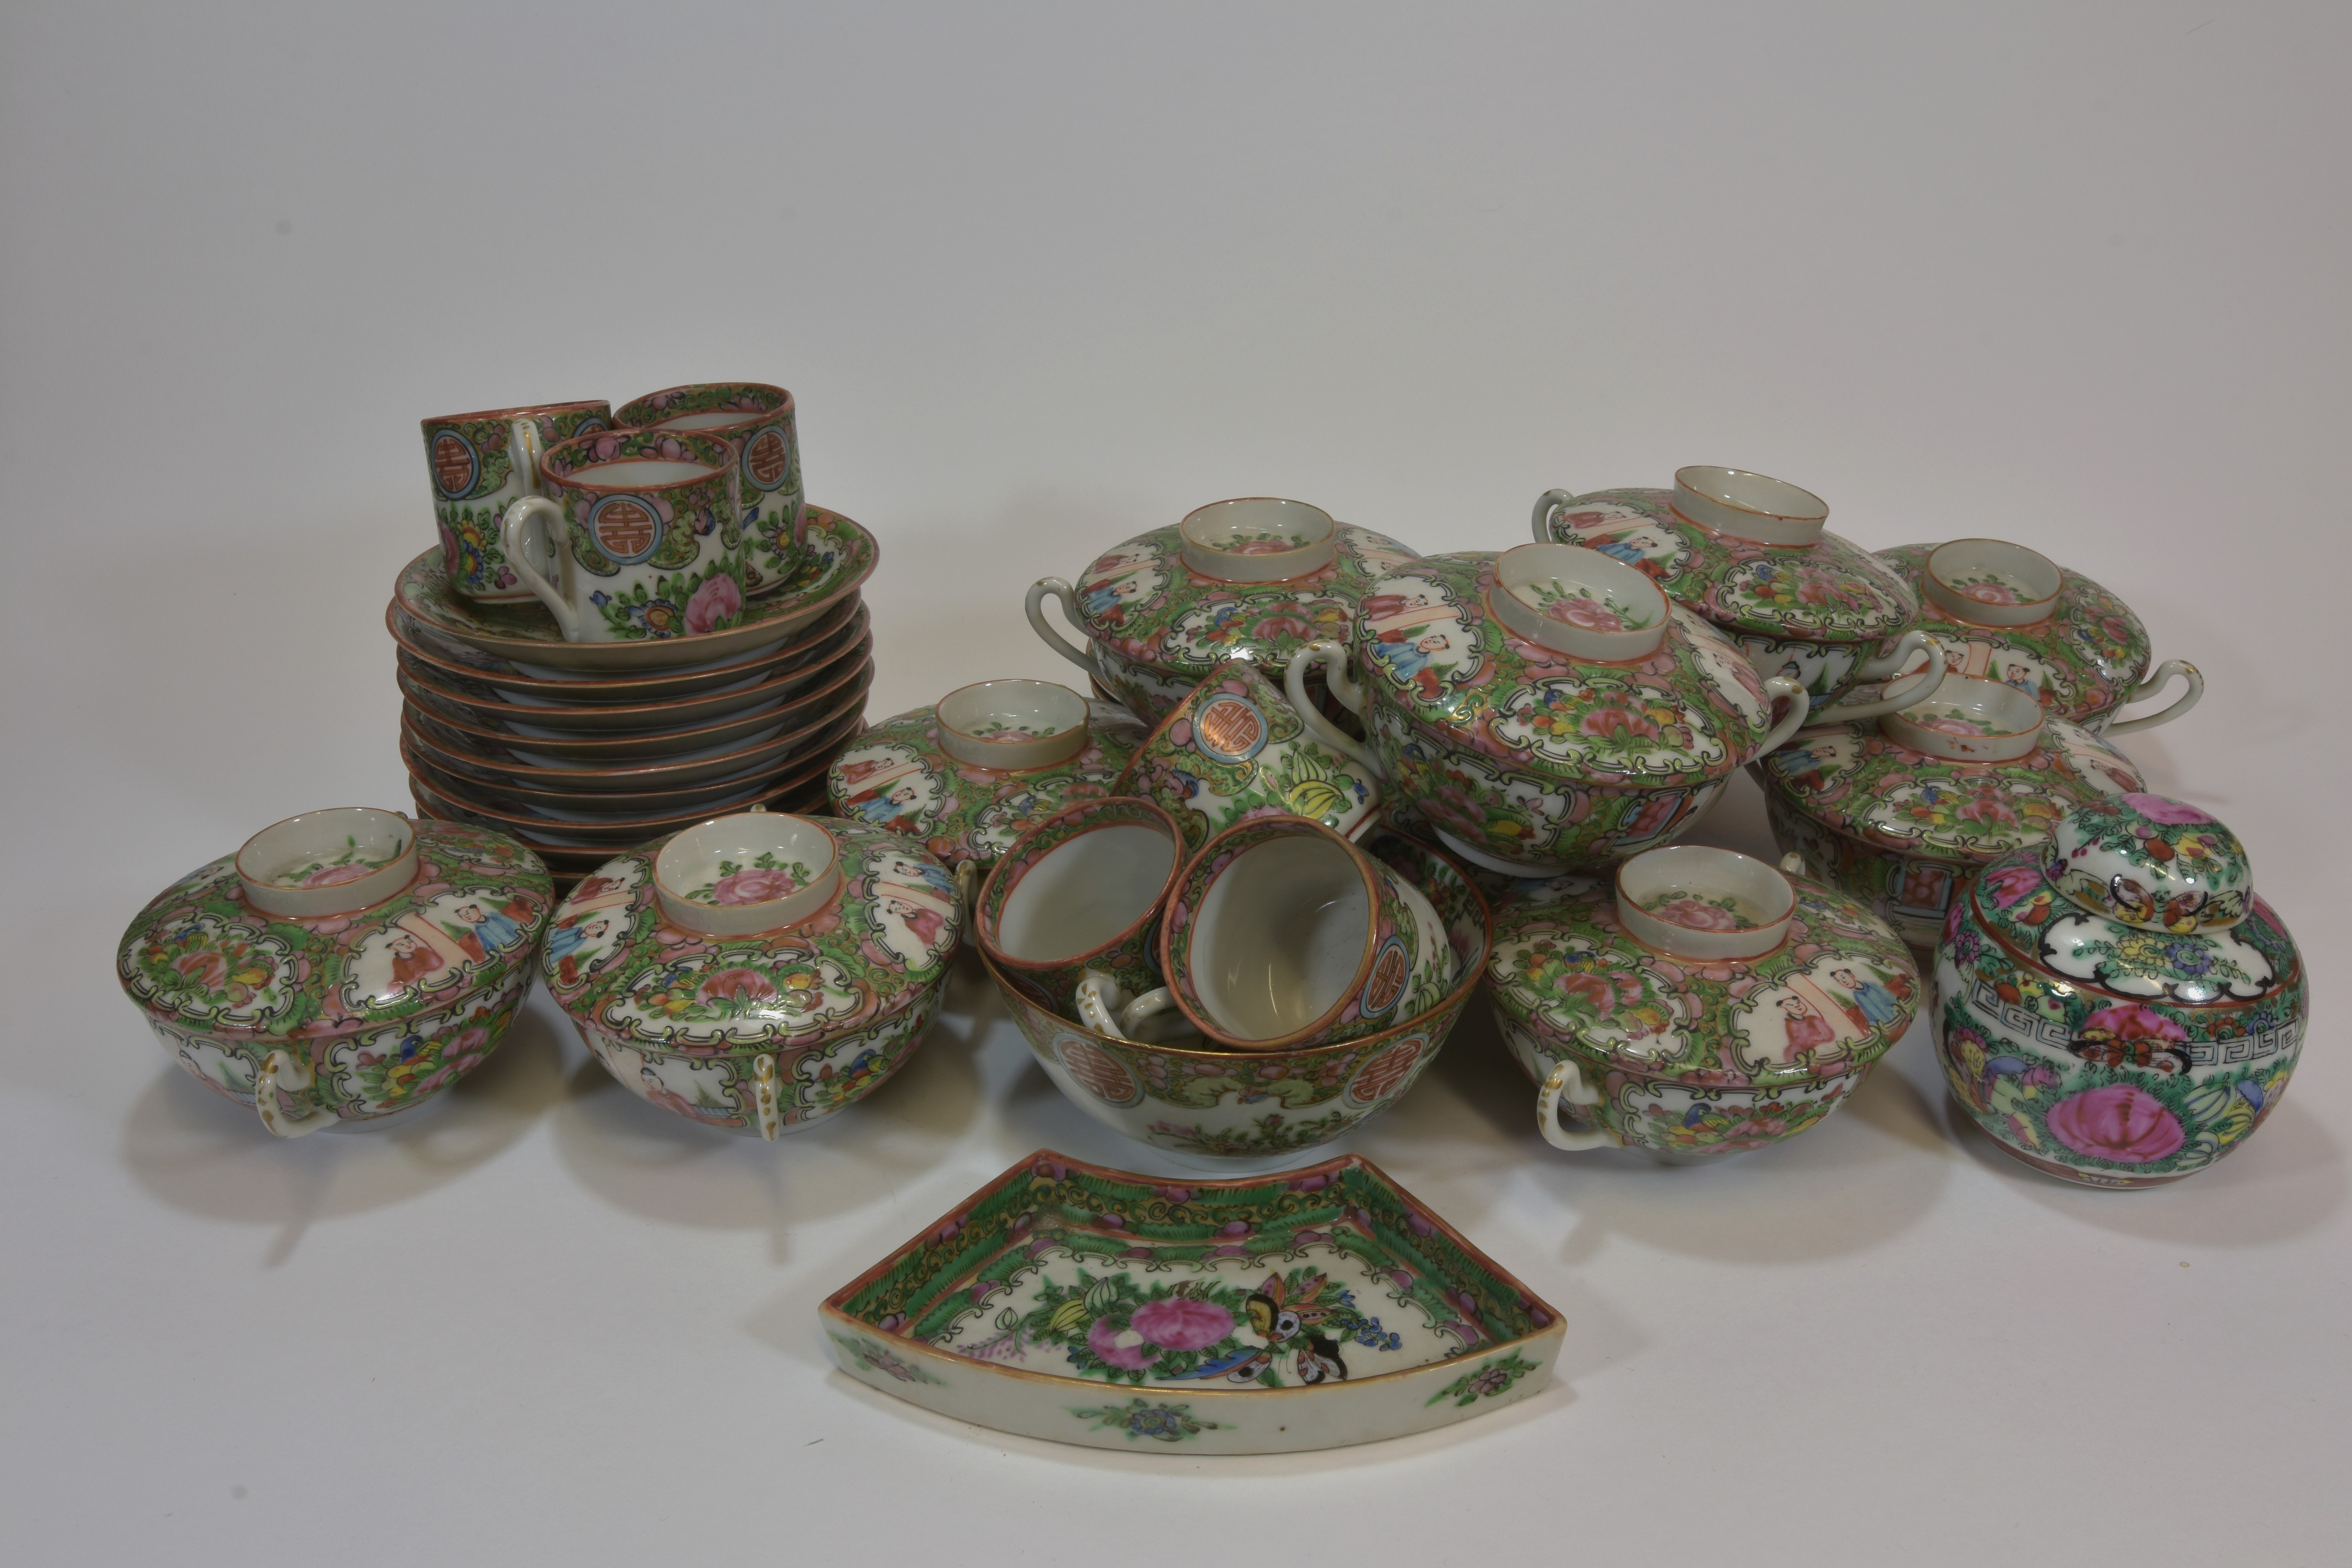 Lot 56 - A 20th century Cantonese dinner set (49pcs)民國時期 廣彩瓷一批